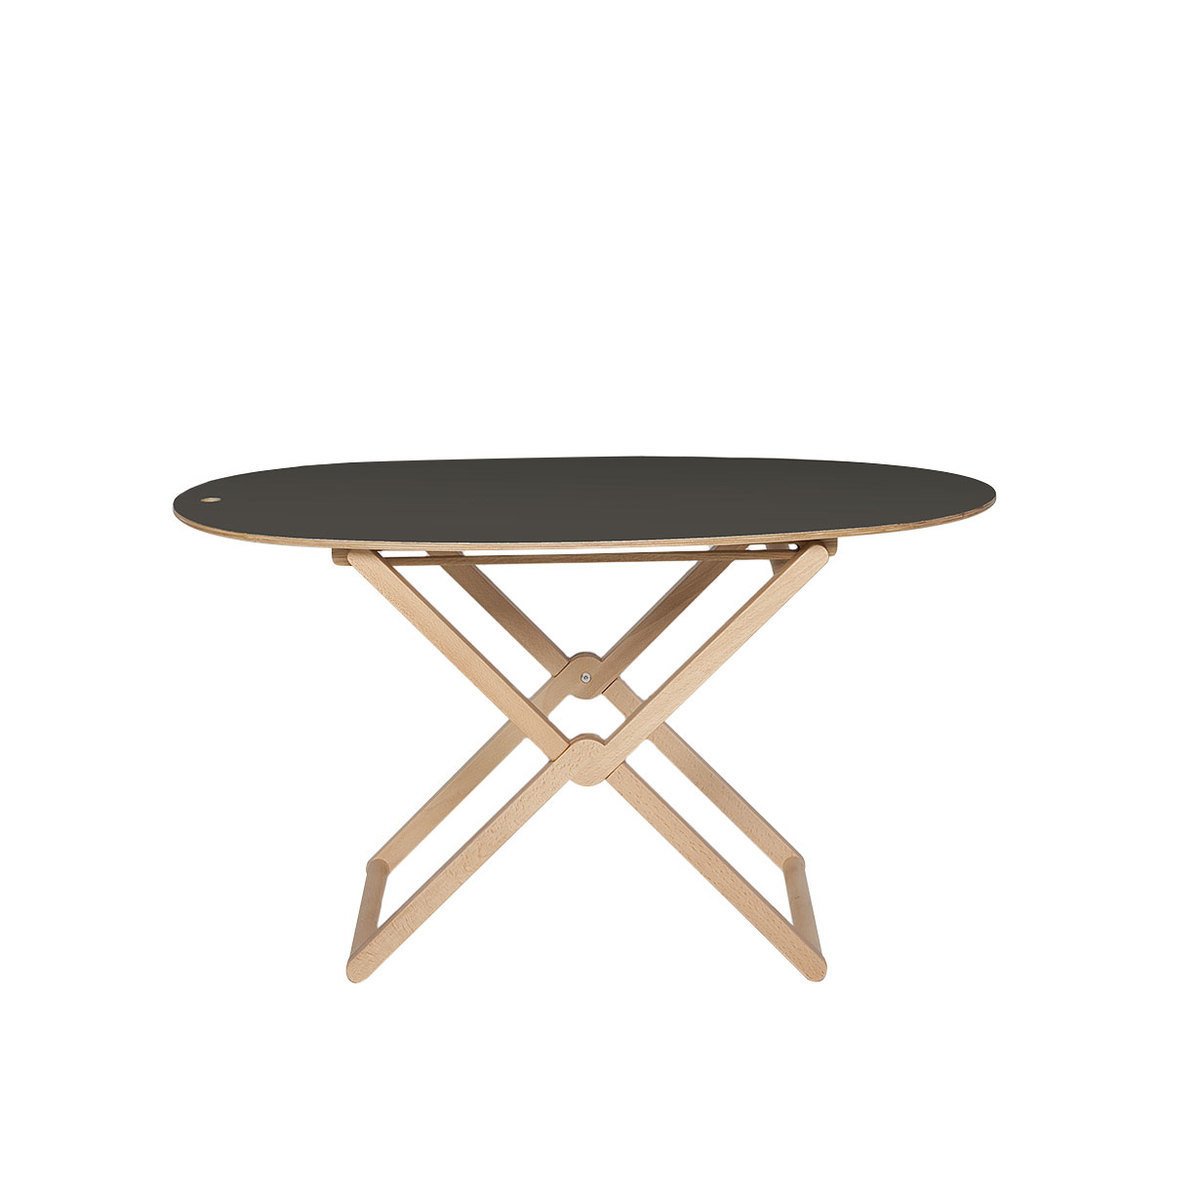 treee oval folding coffee table beech wood by caon. Black Bedroom Furniture Sets. Home Design Ideas